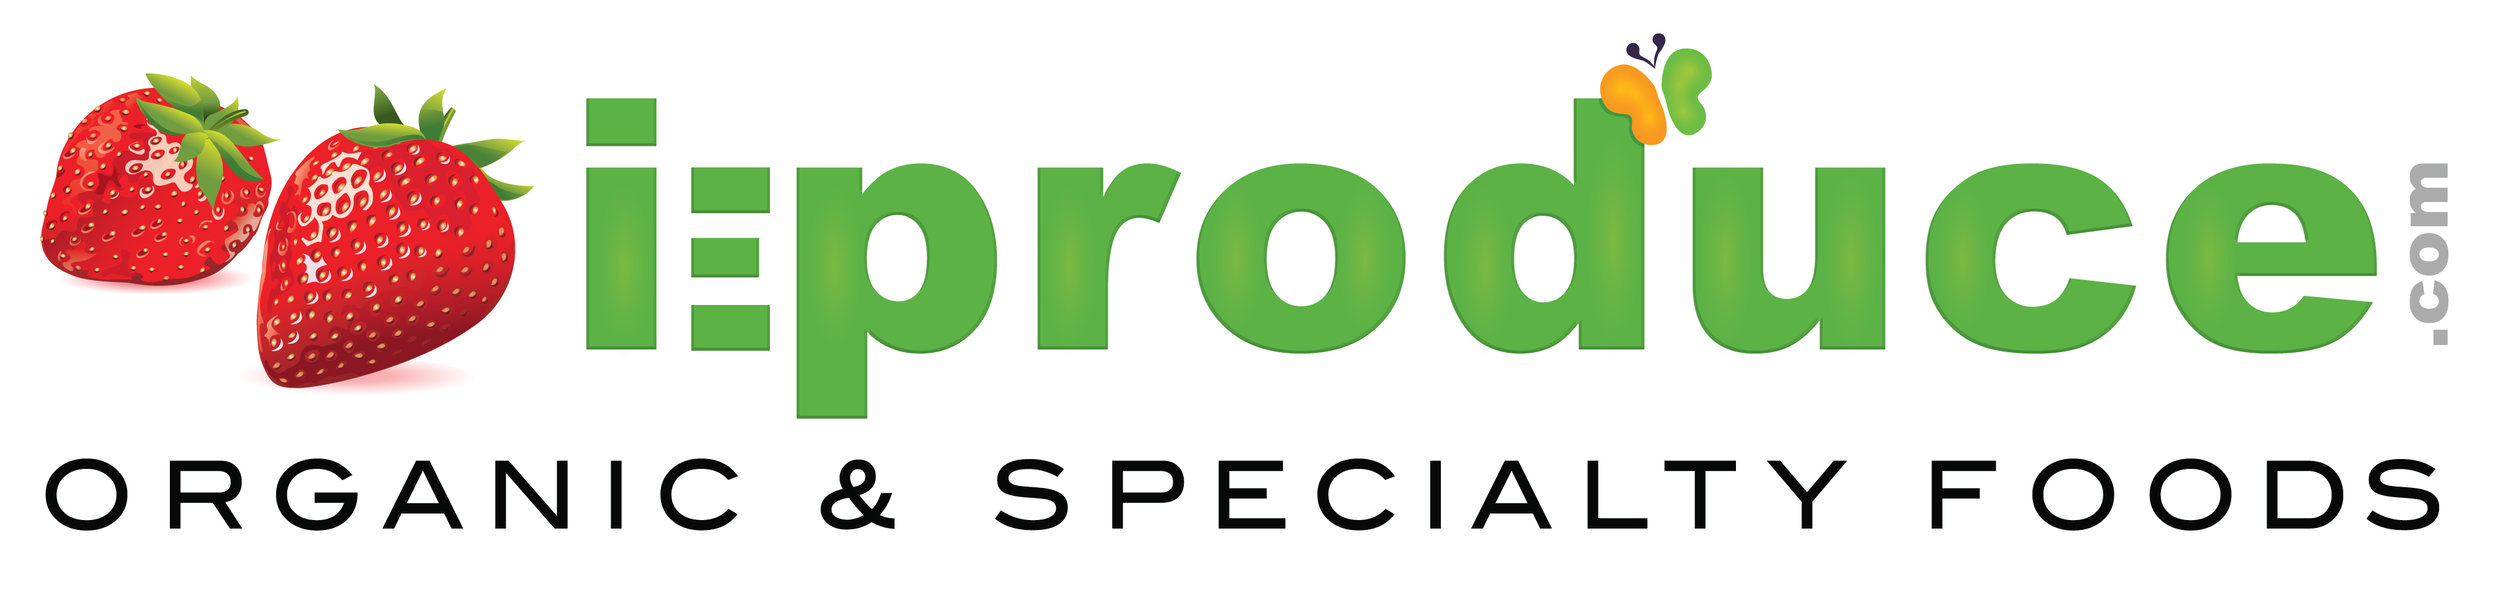 IE PRODUCE logo.jpg